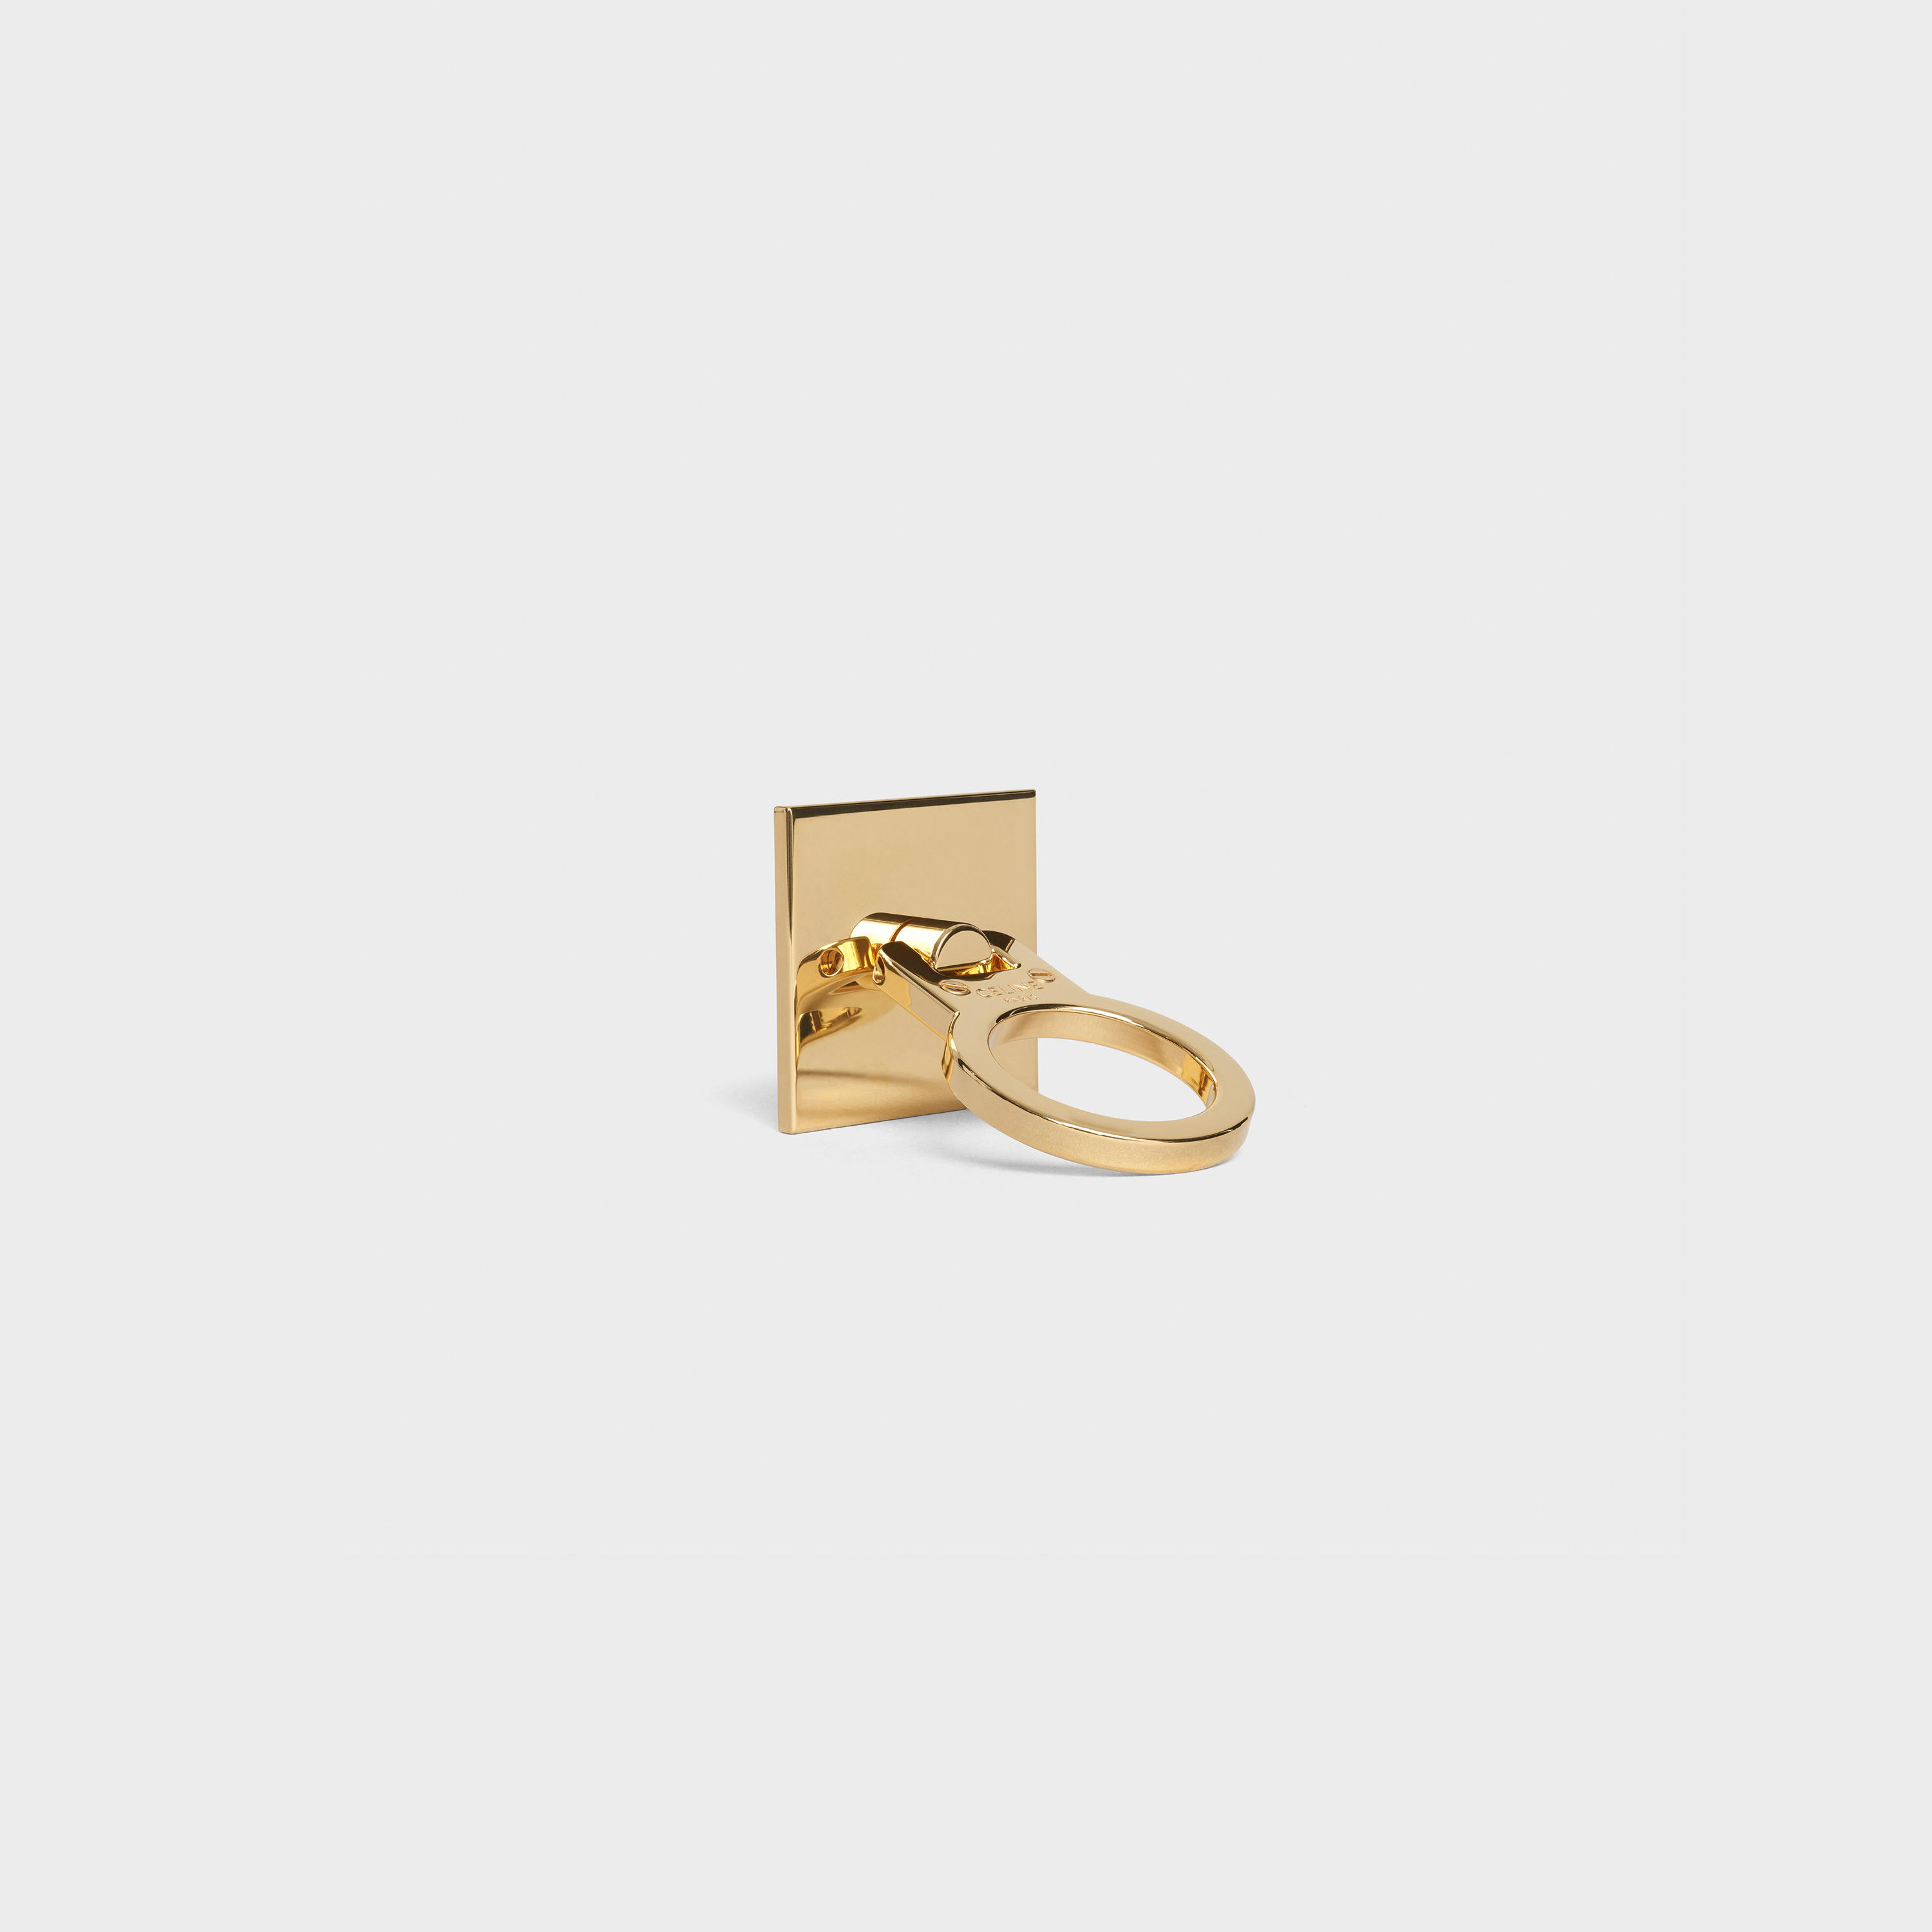 Phone Ring in Brass | CELINE